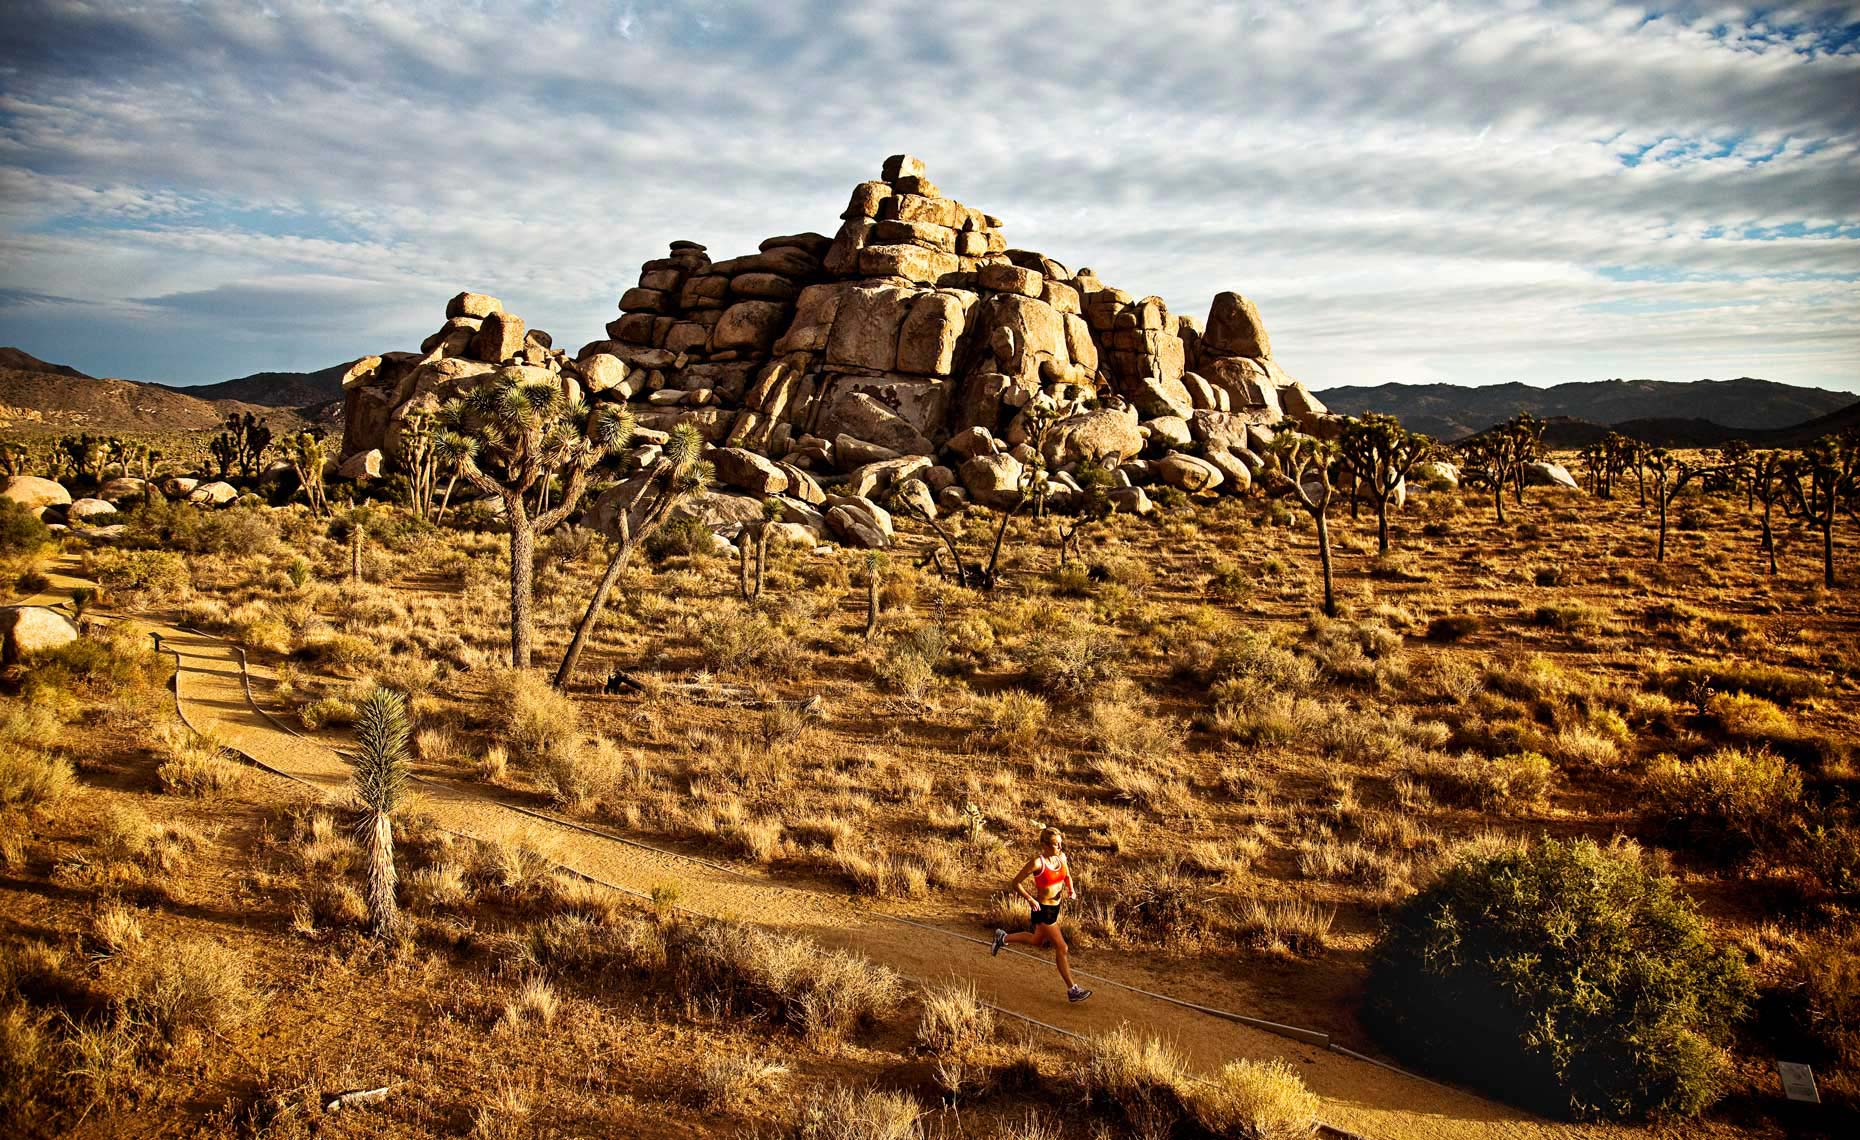 Philadelphia Photographer STEVE BOYLE - Joshua Tree Running